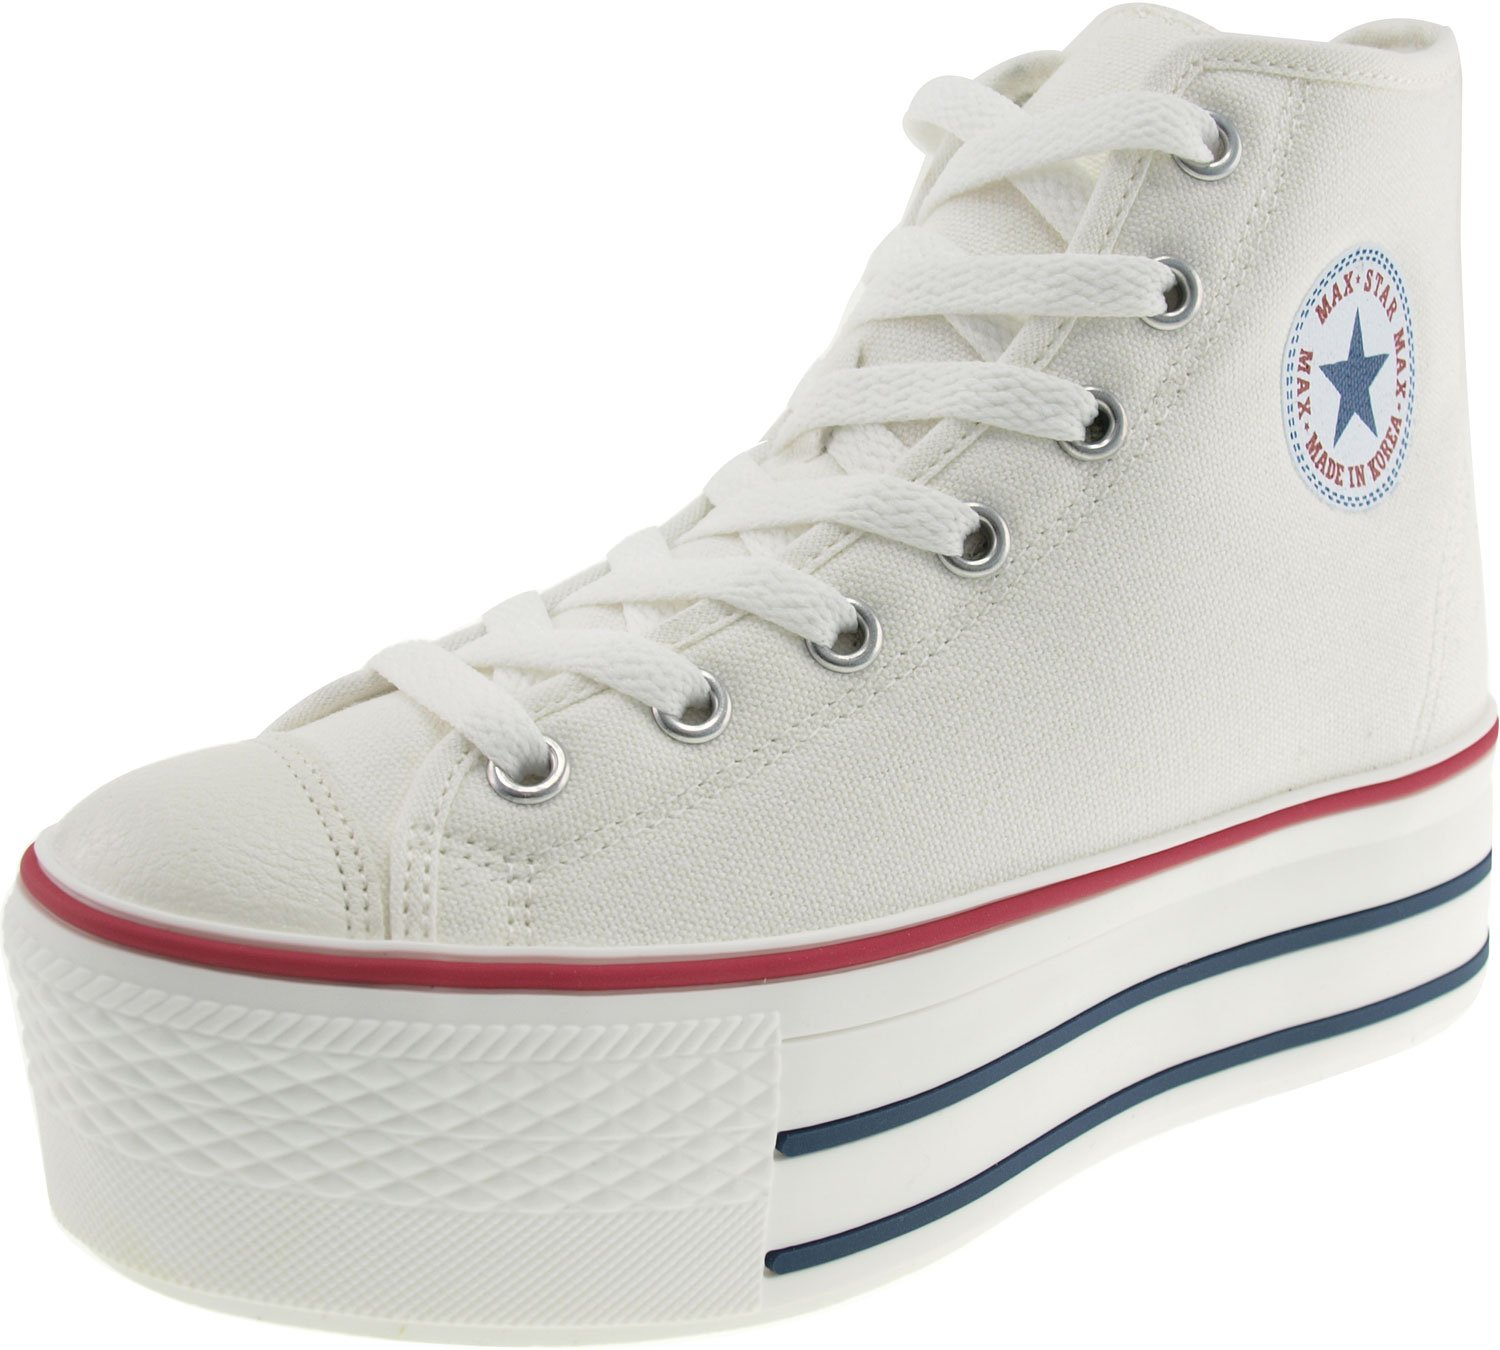 Maxstar Women's C50 7 Holes Zipper Platform Canvas High Top Sneakers B00CHVUUG4 8.5 B(M) US|White